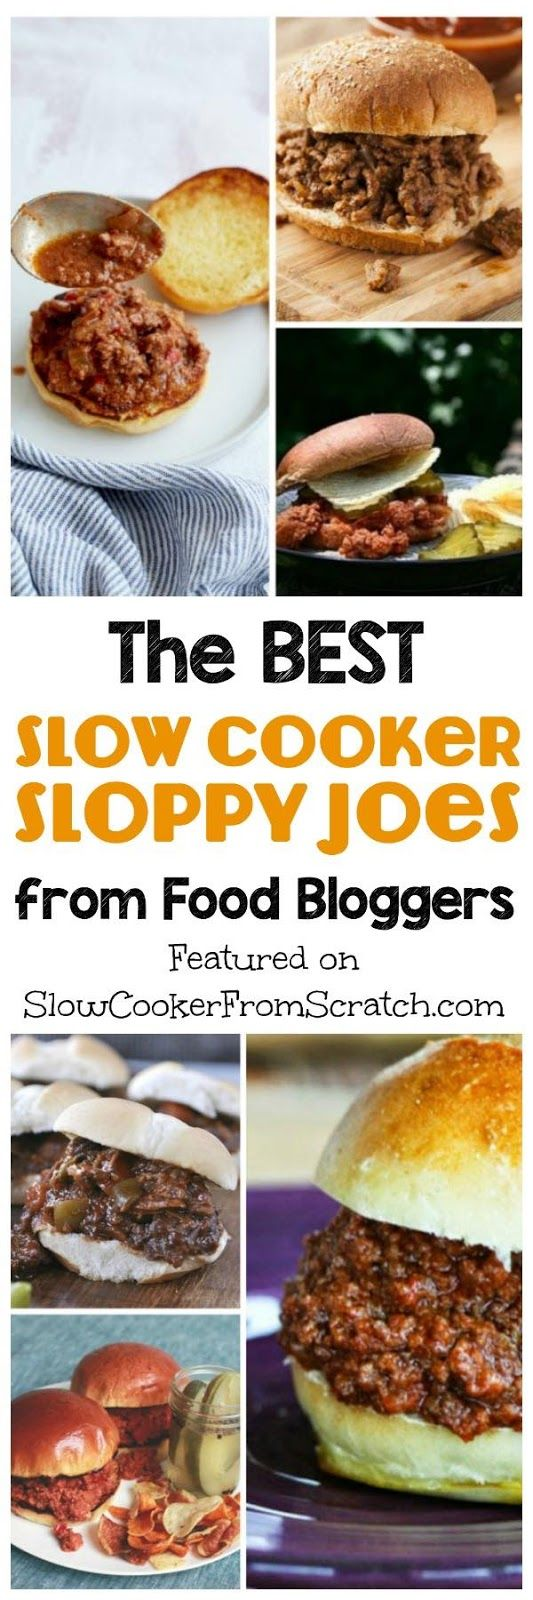 Everyone loves Sloppy Joes, dont they, and here are The BEST Slow Cooker Sloppy Joes from Food Bloggers. All these Slow Cooker Sloppy Joes recipes use from-scratch ingredients, and there are Sloppy Joe's for everyone, even vegetarian ones made with lentils!